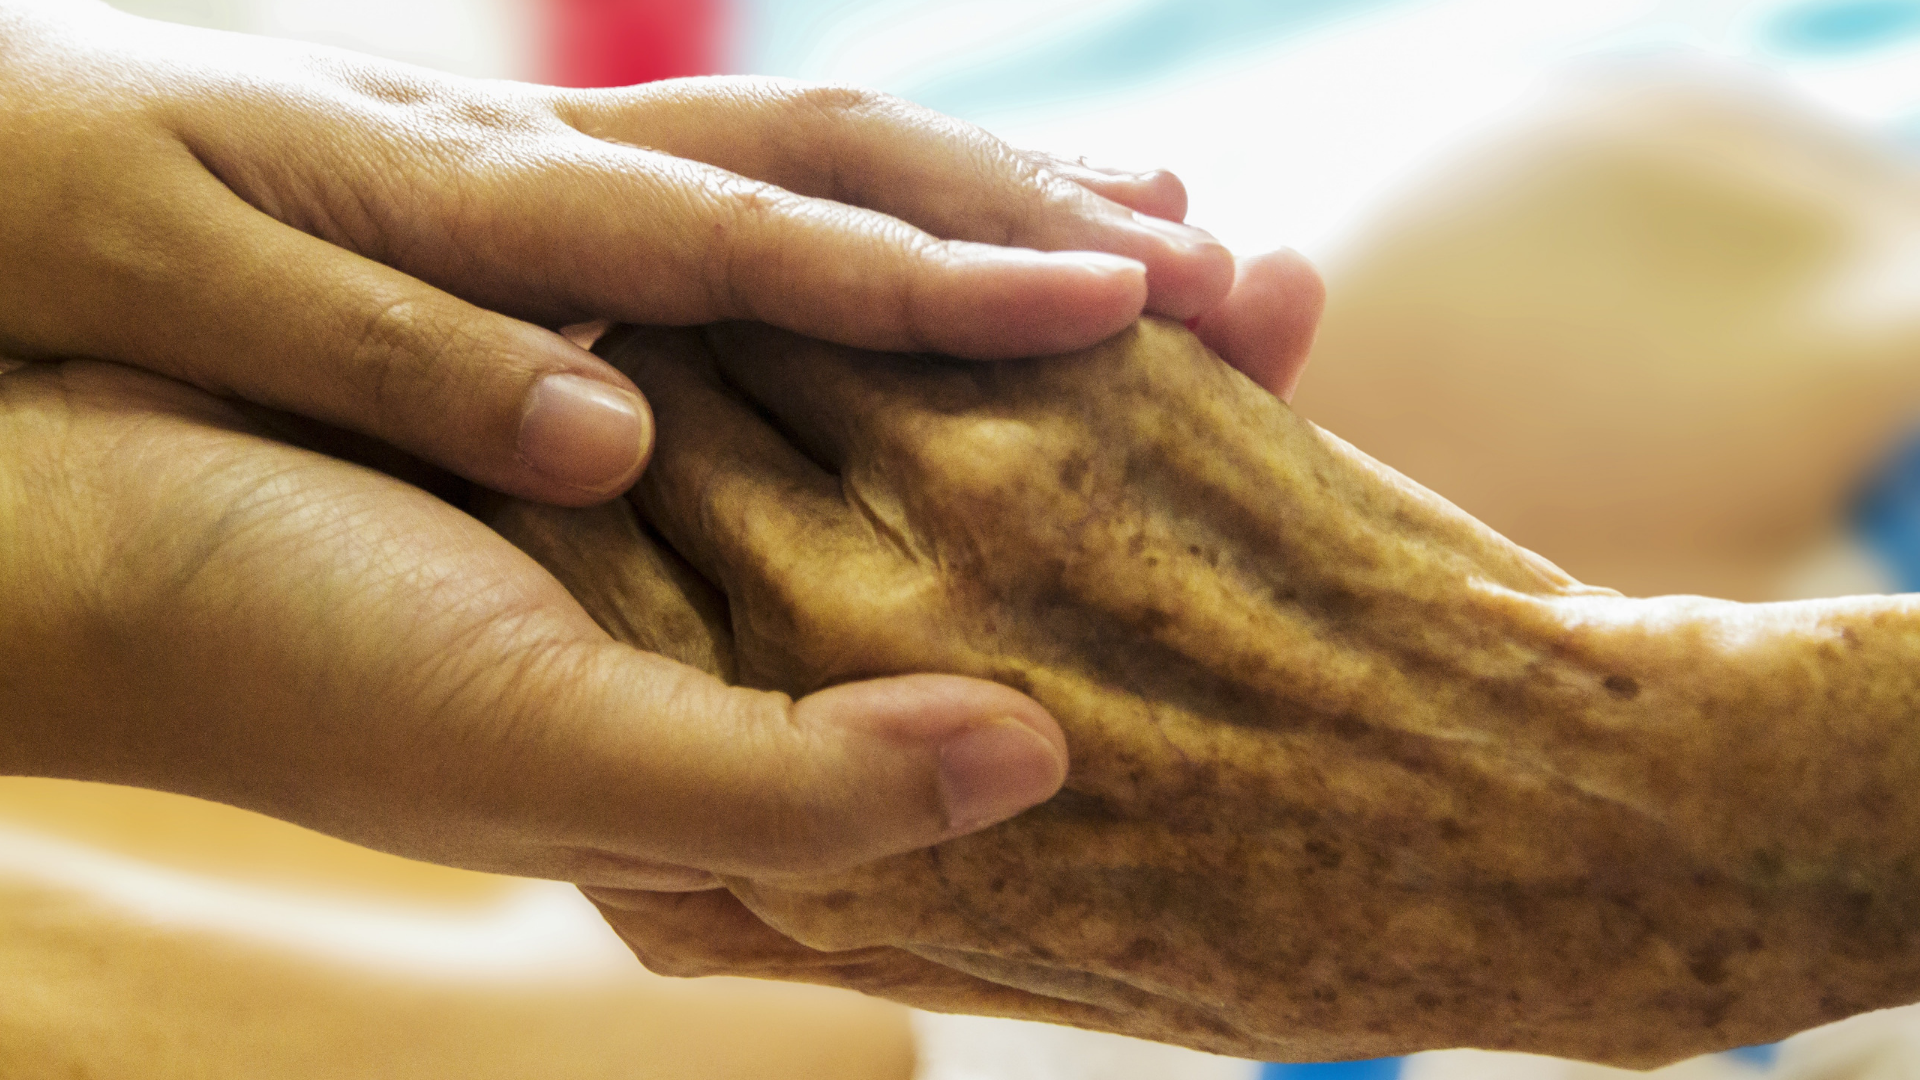 a young person's hands holding an elderly person's hand